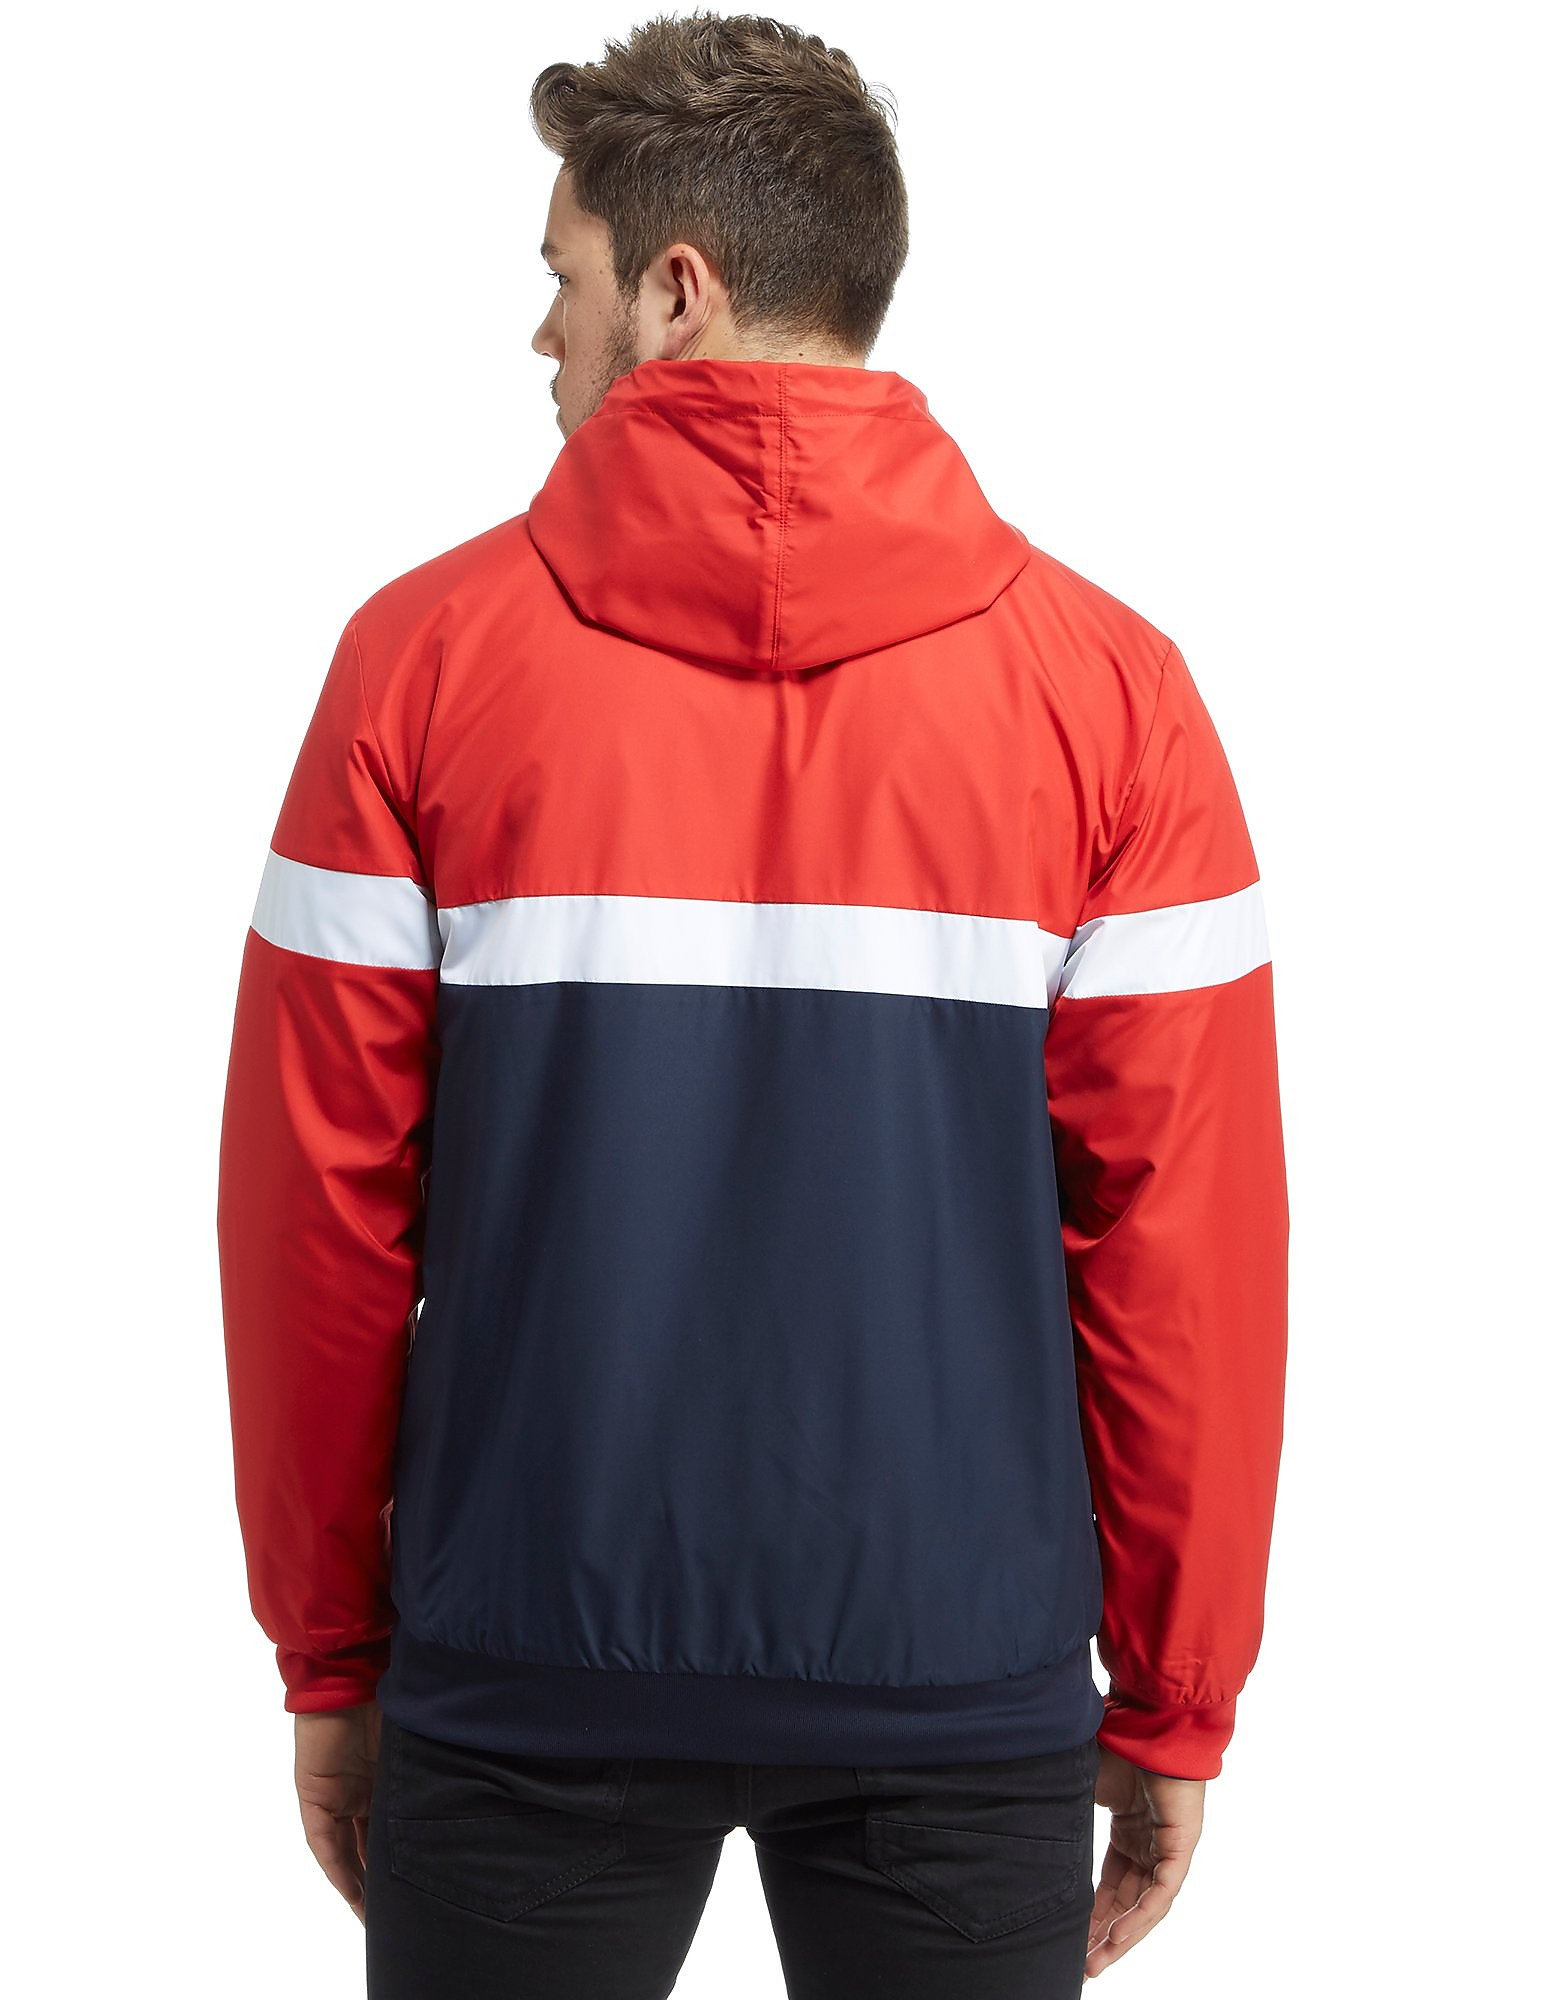 adidas Originals Itasca Collection Reversible Windbreaker Jacket